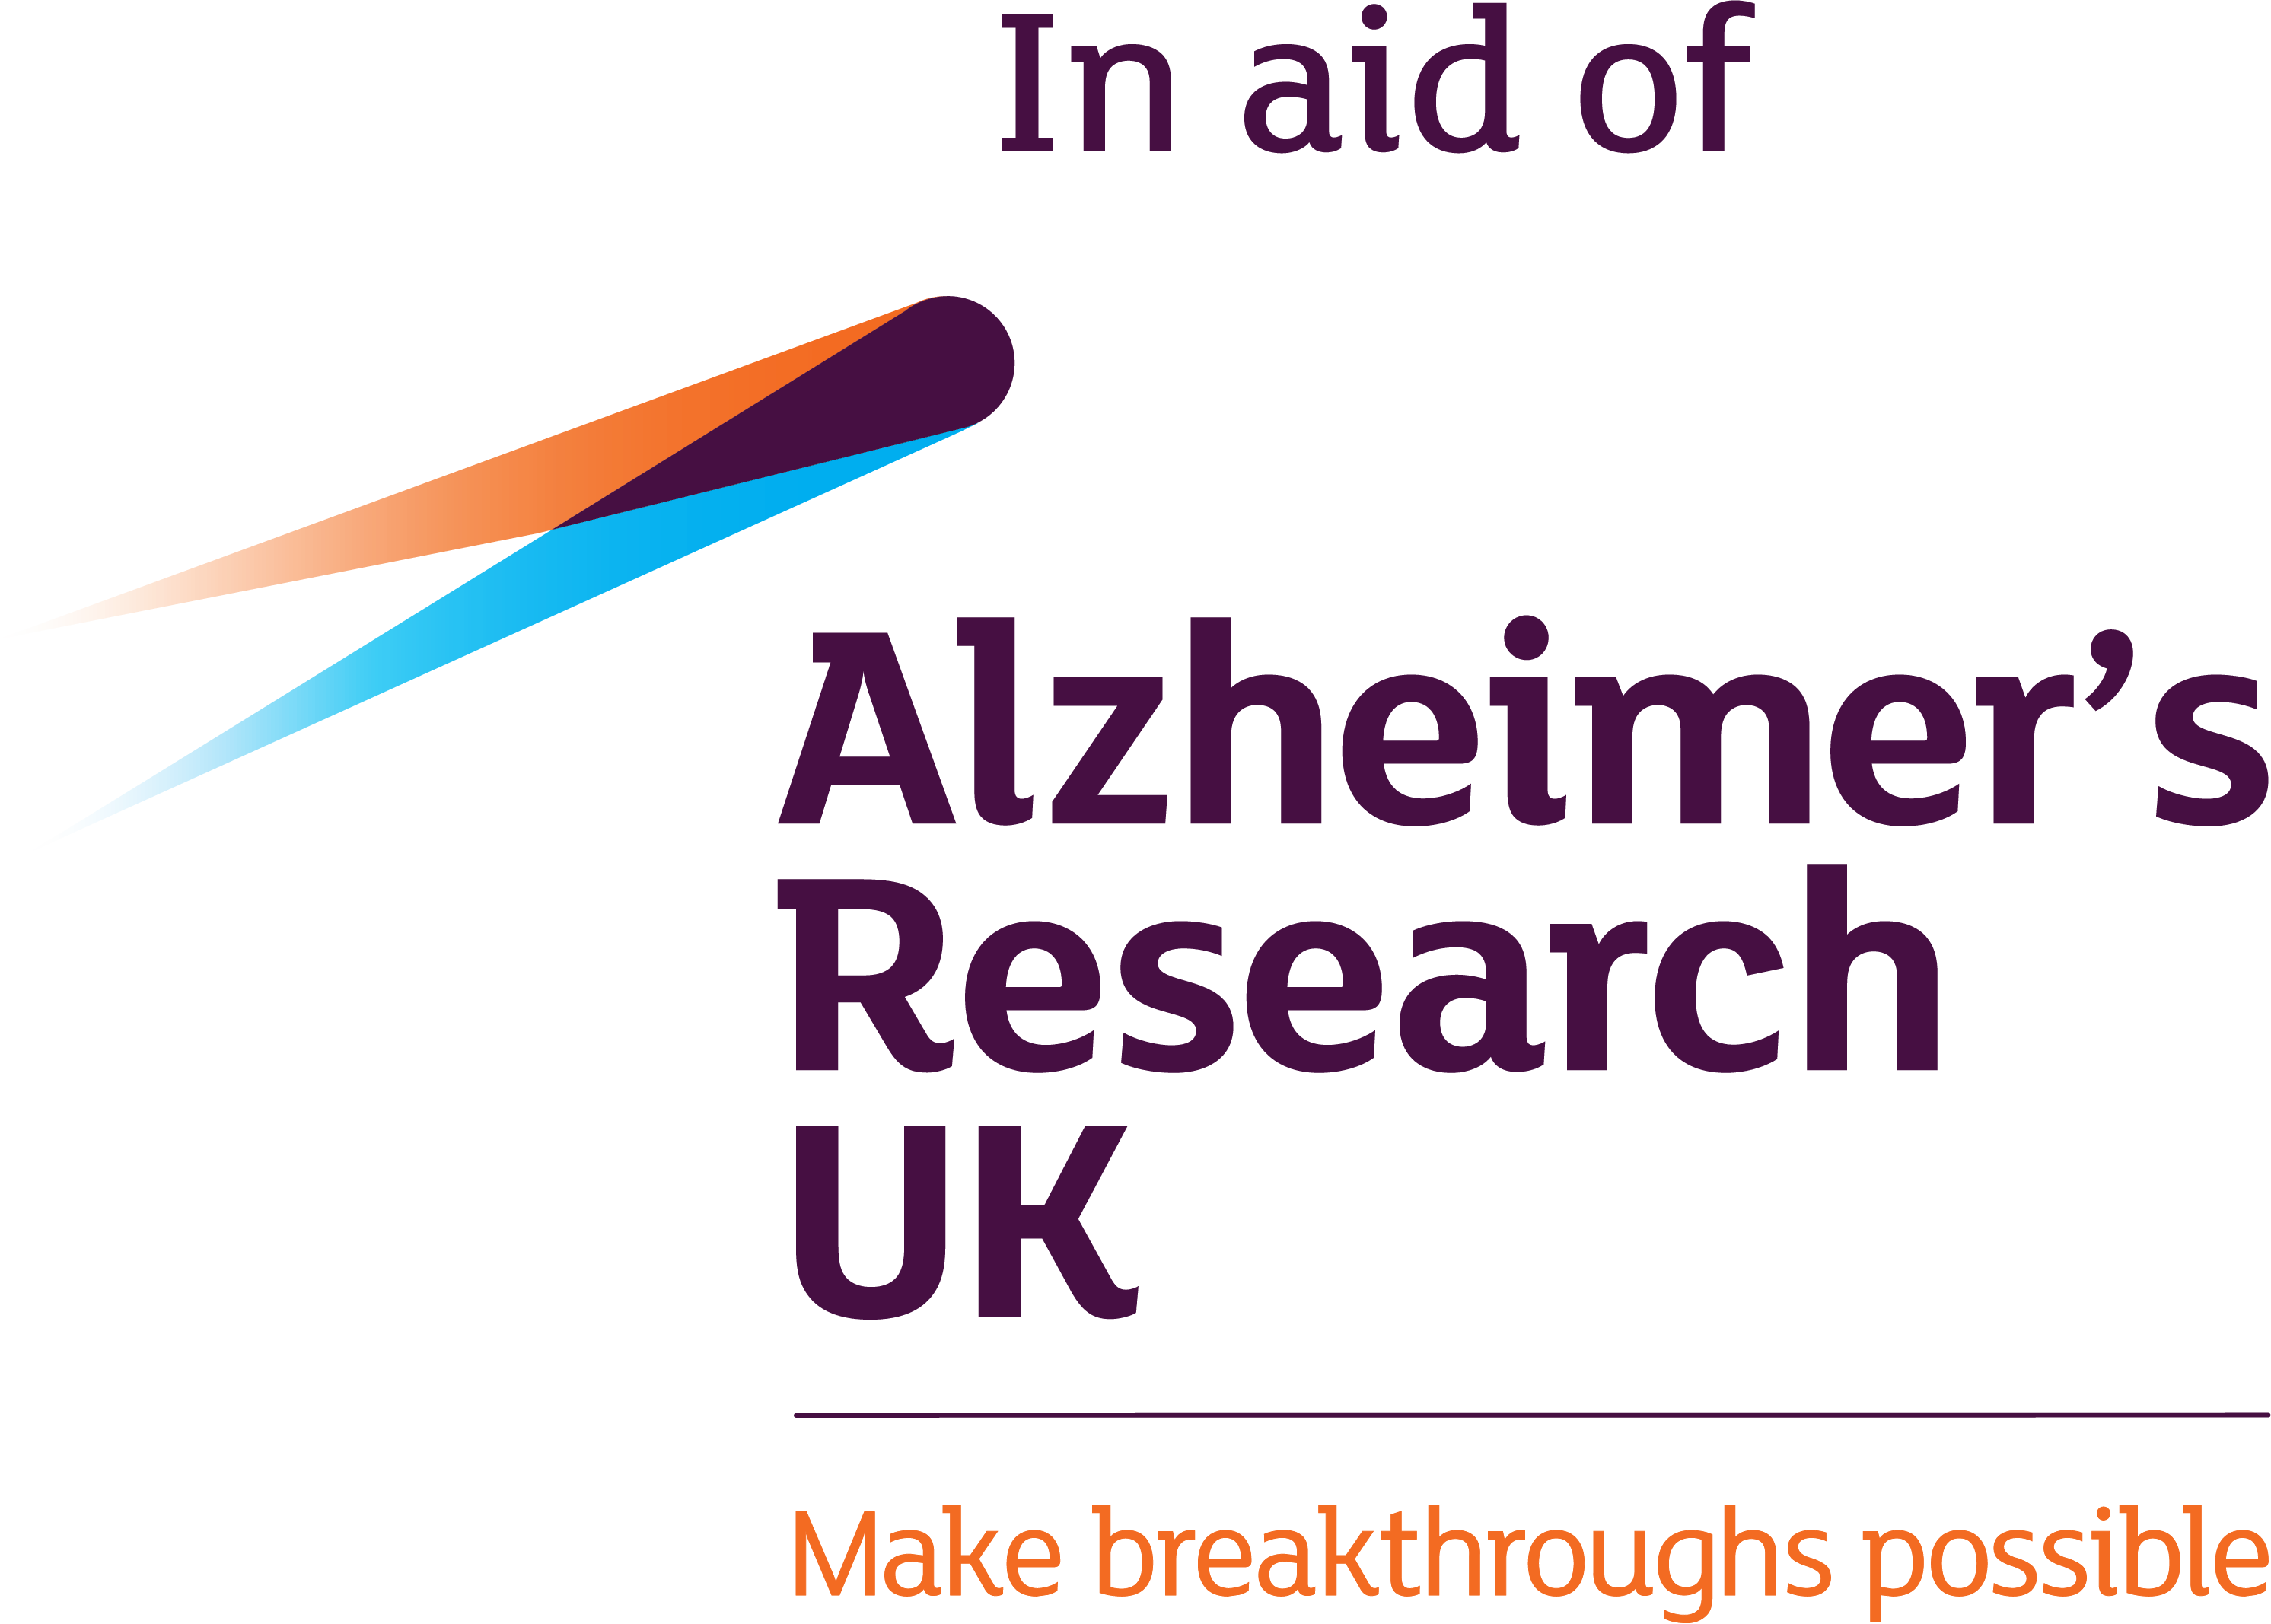 https://www.oxfordhealthpolicyforum.org/wp-content/uploads/2021/02/ARUK_VERTICAL_in_aid_of.png